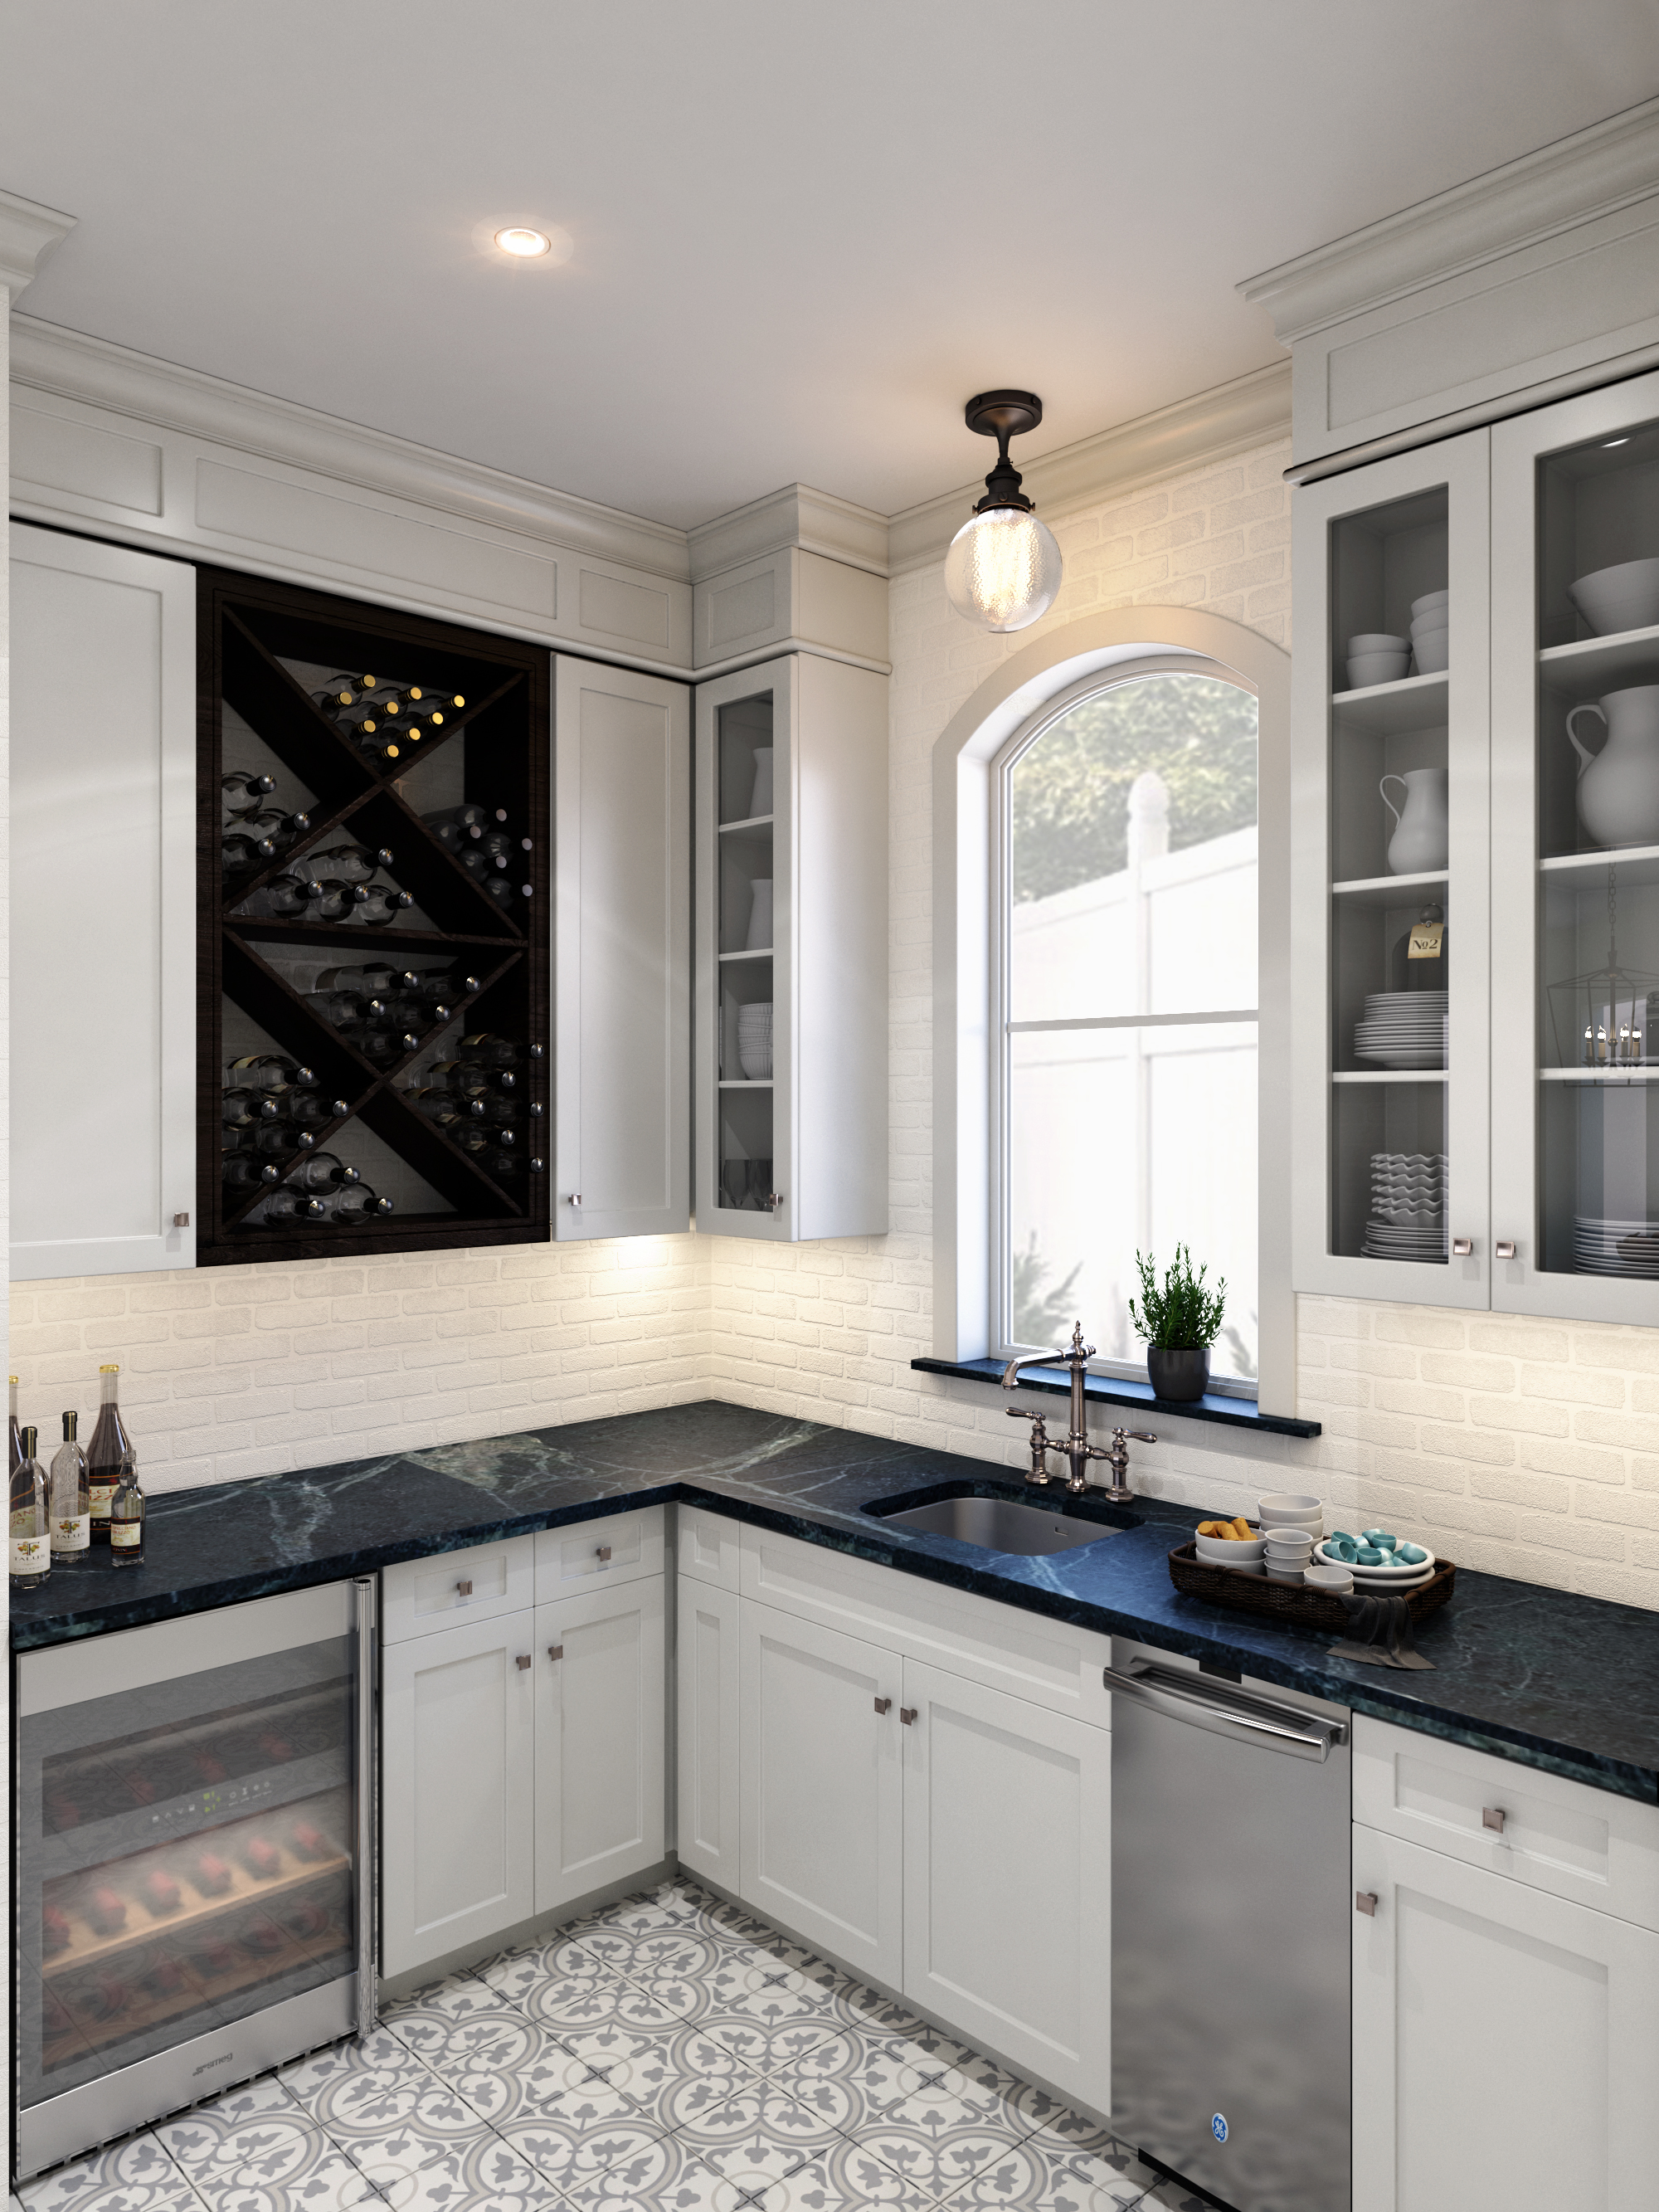 Butler's pantry design with soapstone counters, white brick walls, concrete tile floors and wine storage. Carla Aston, Designer | Shebin Poothery, Rendering | #butlerspantry #concretetile #whitebrick